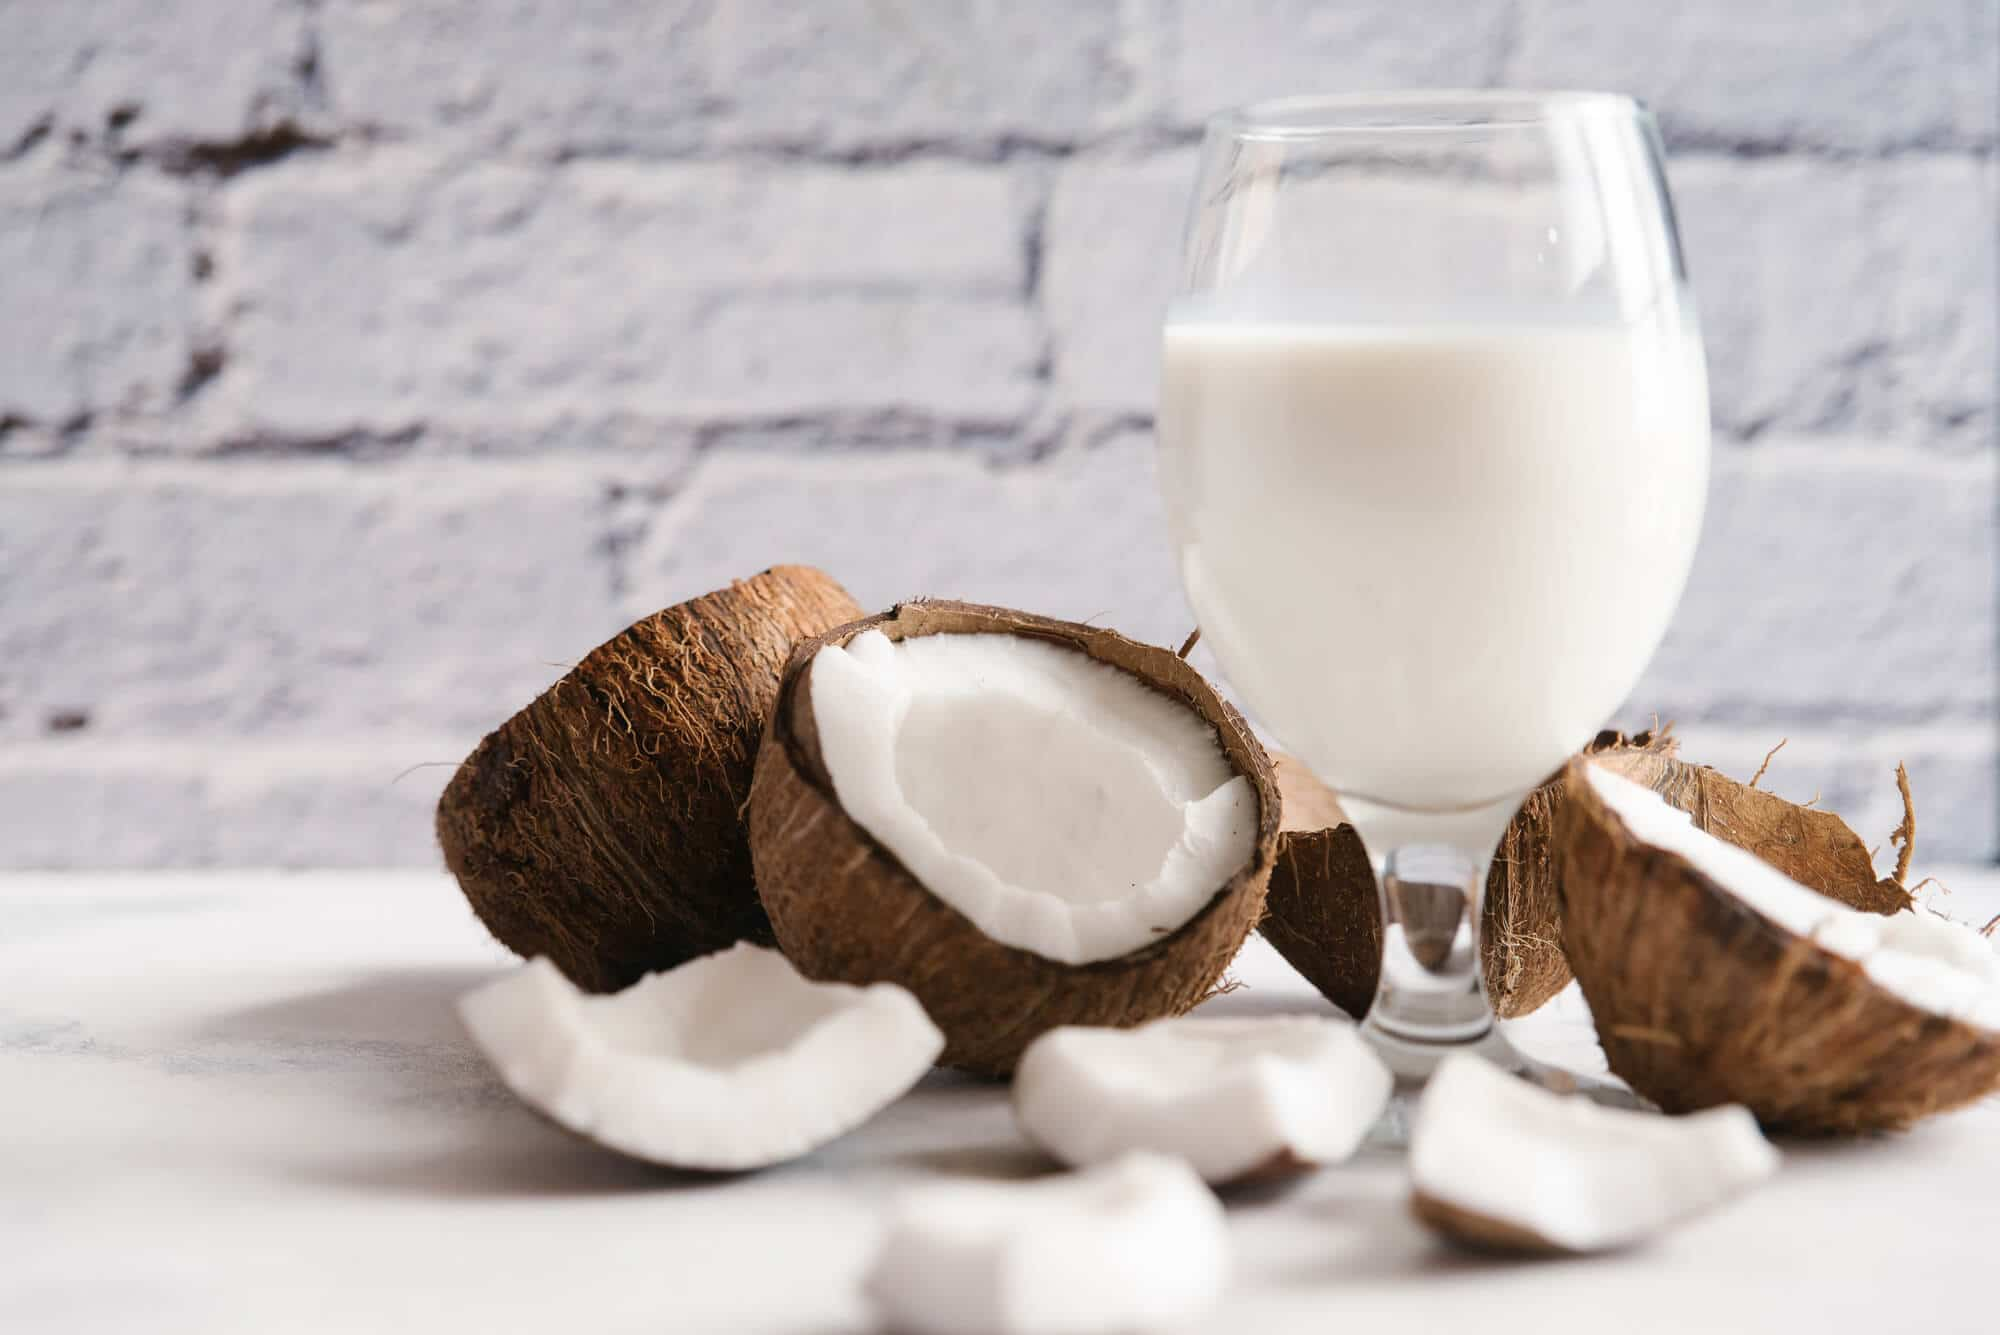 Coconut milk with broken coconut on white table